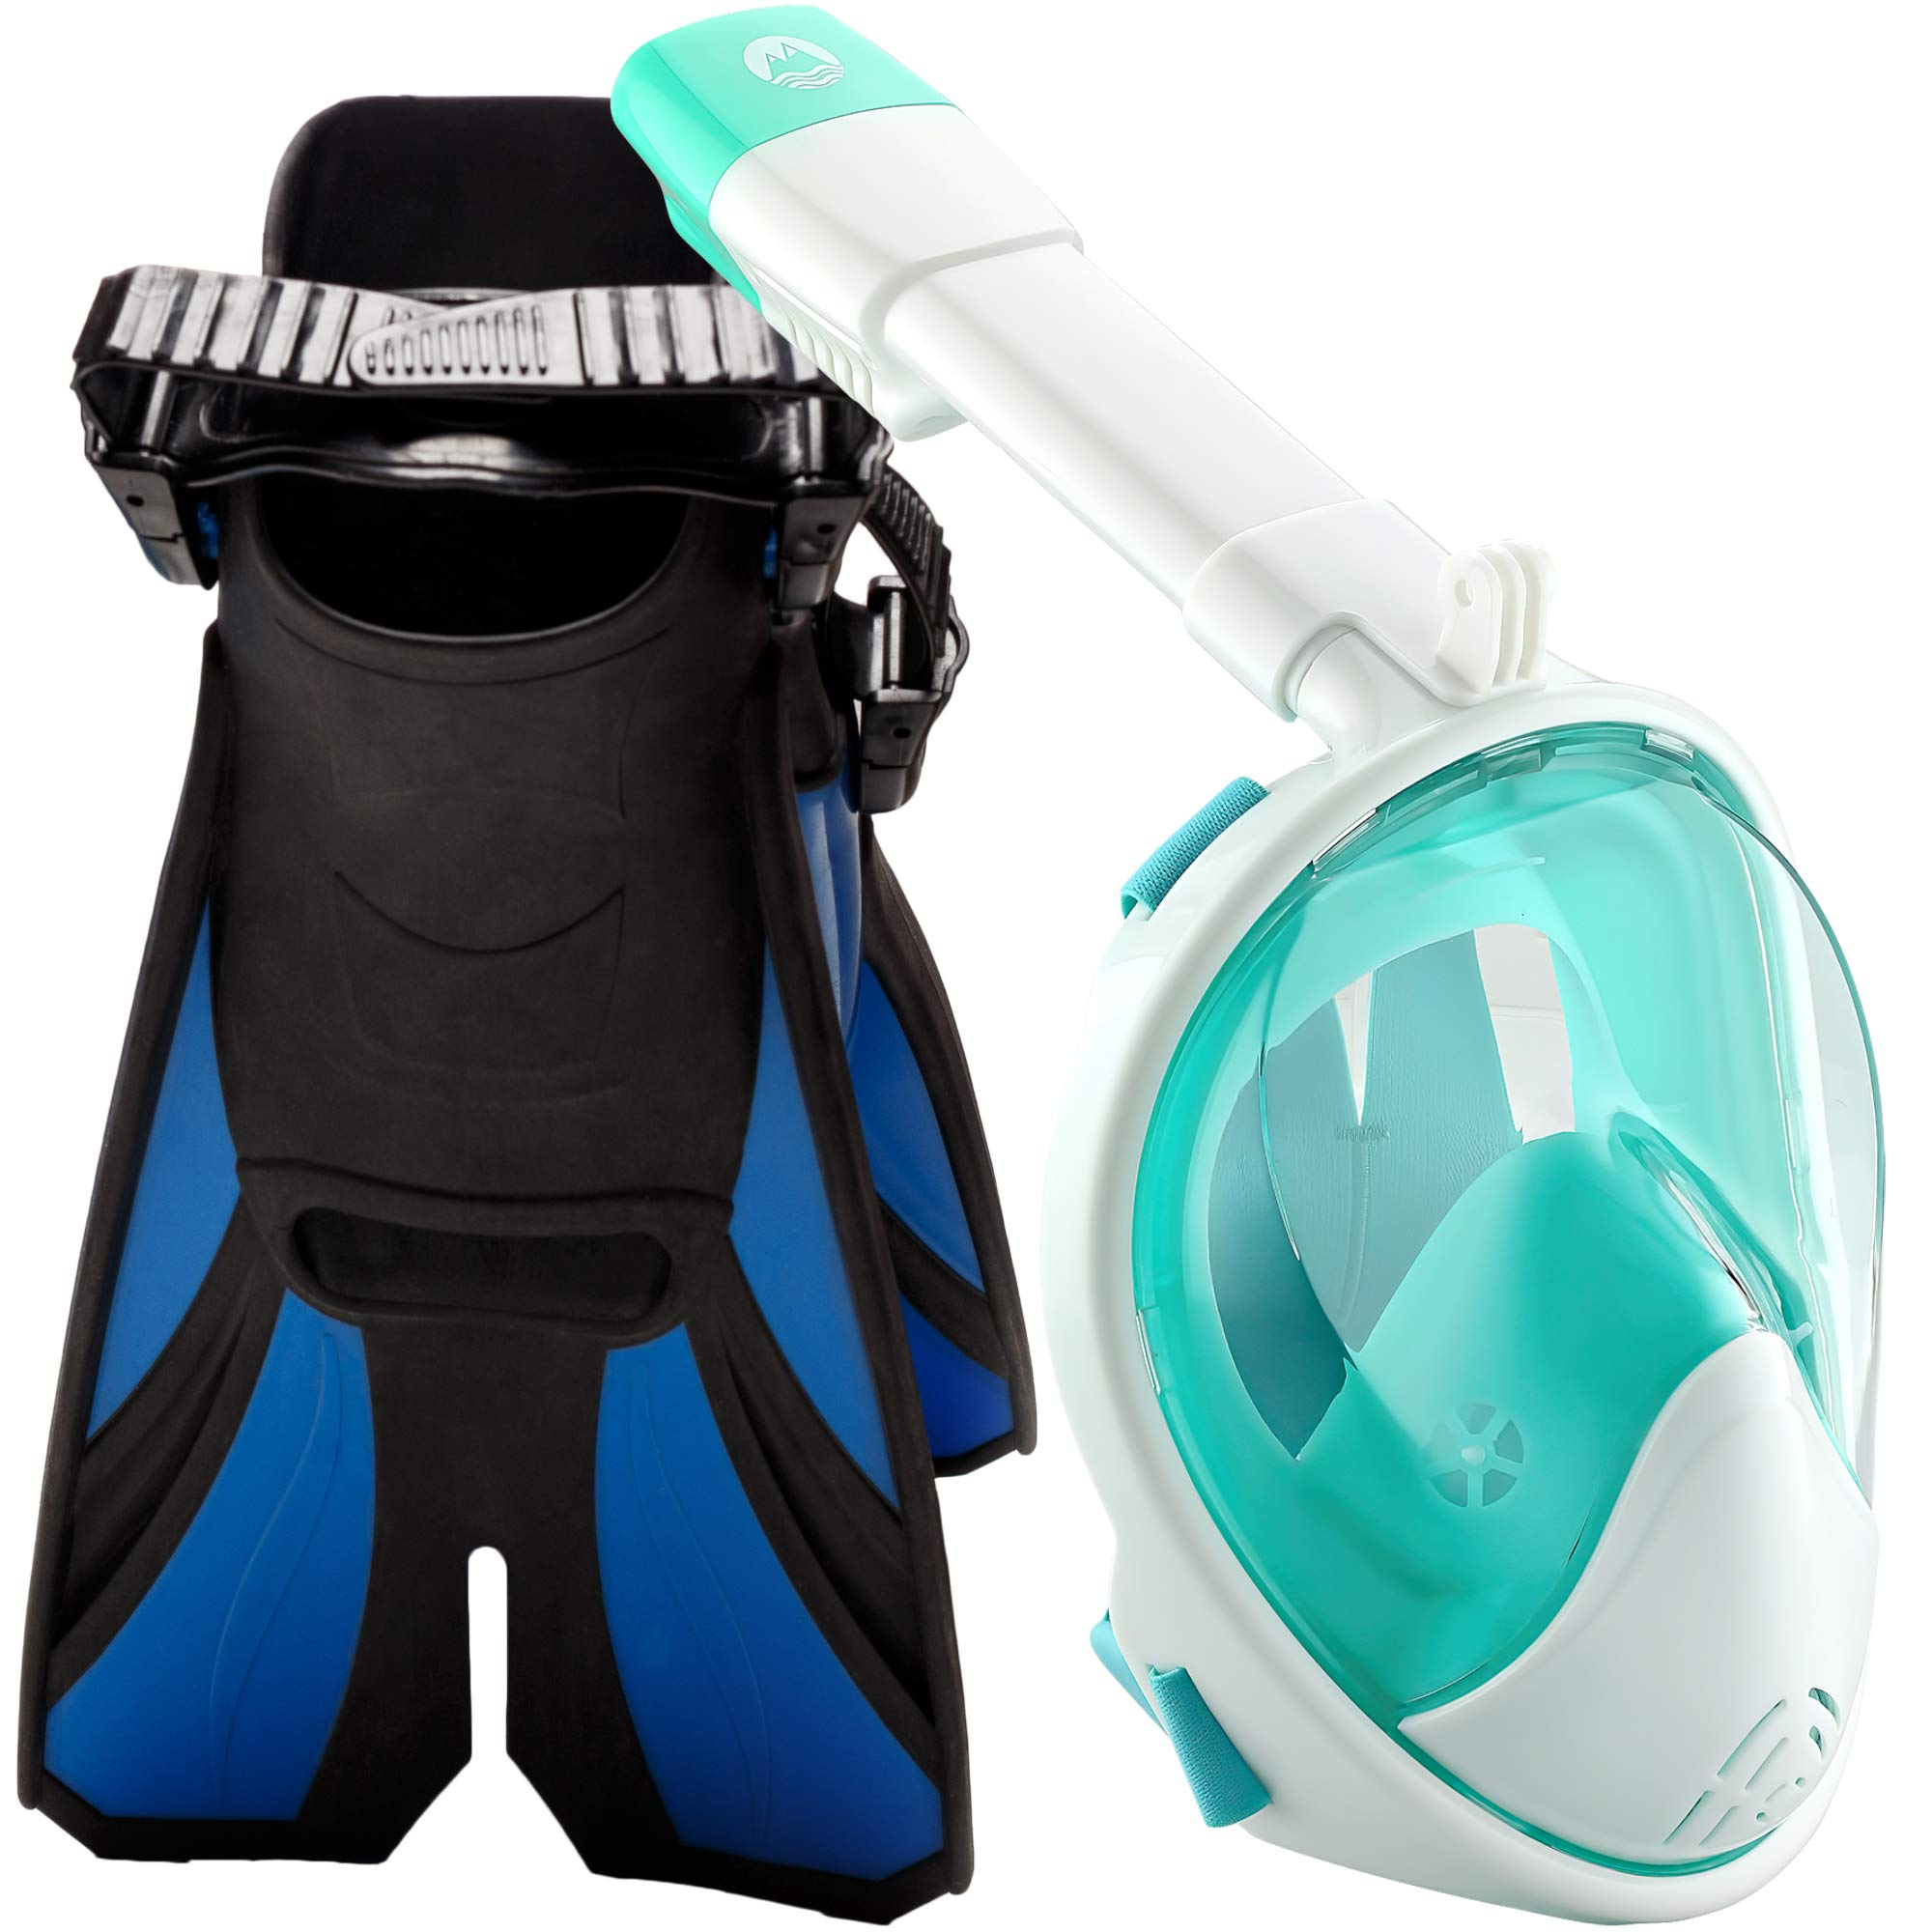 cozia design Snorkel Set with Snorkel MASK - Swim FINS Included - Snorkel MASK Full FACE with Adjustable Flippers - 180° Panoramic View Full face Snorkel mask and Open Heel Snorkel fins by cozia design